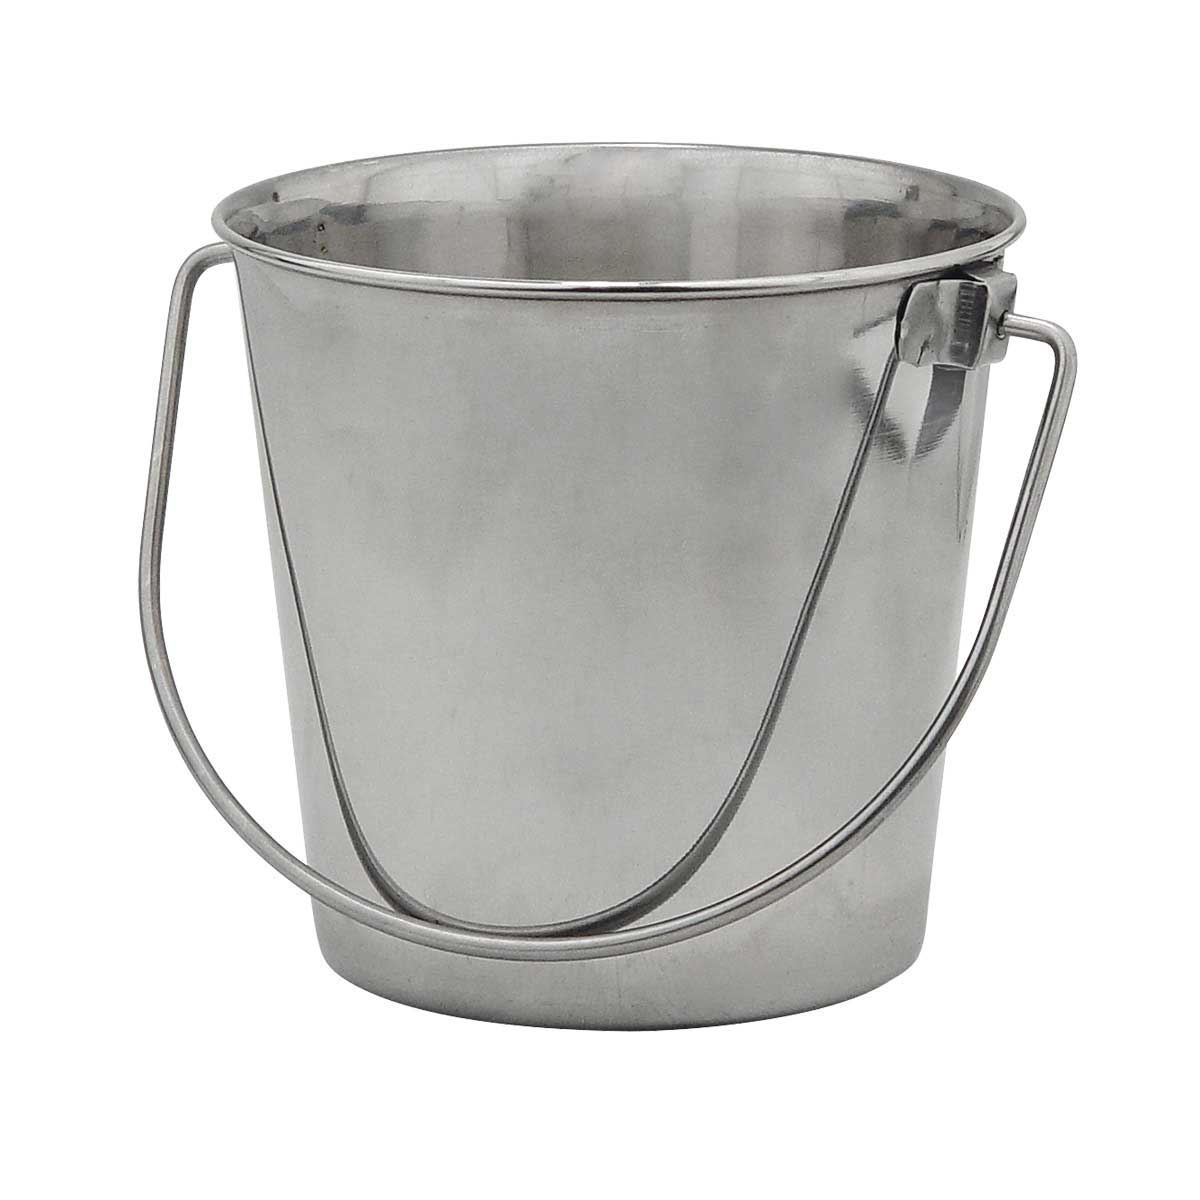 2 Quart Indipets Stainless Steel Pail With Handle